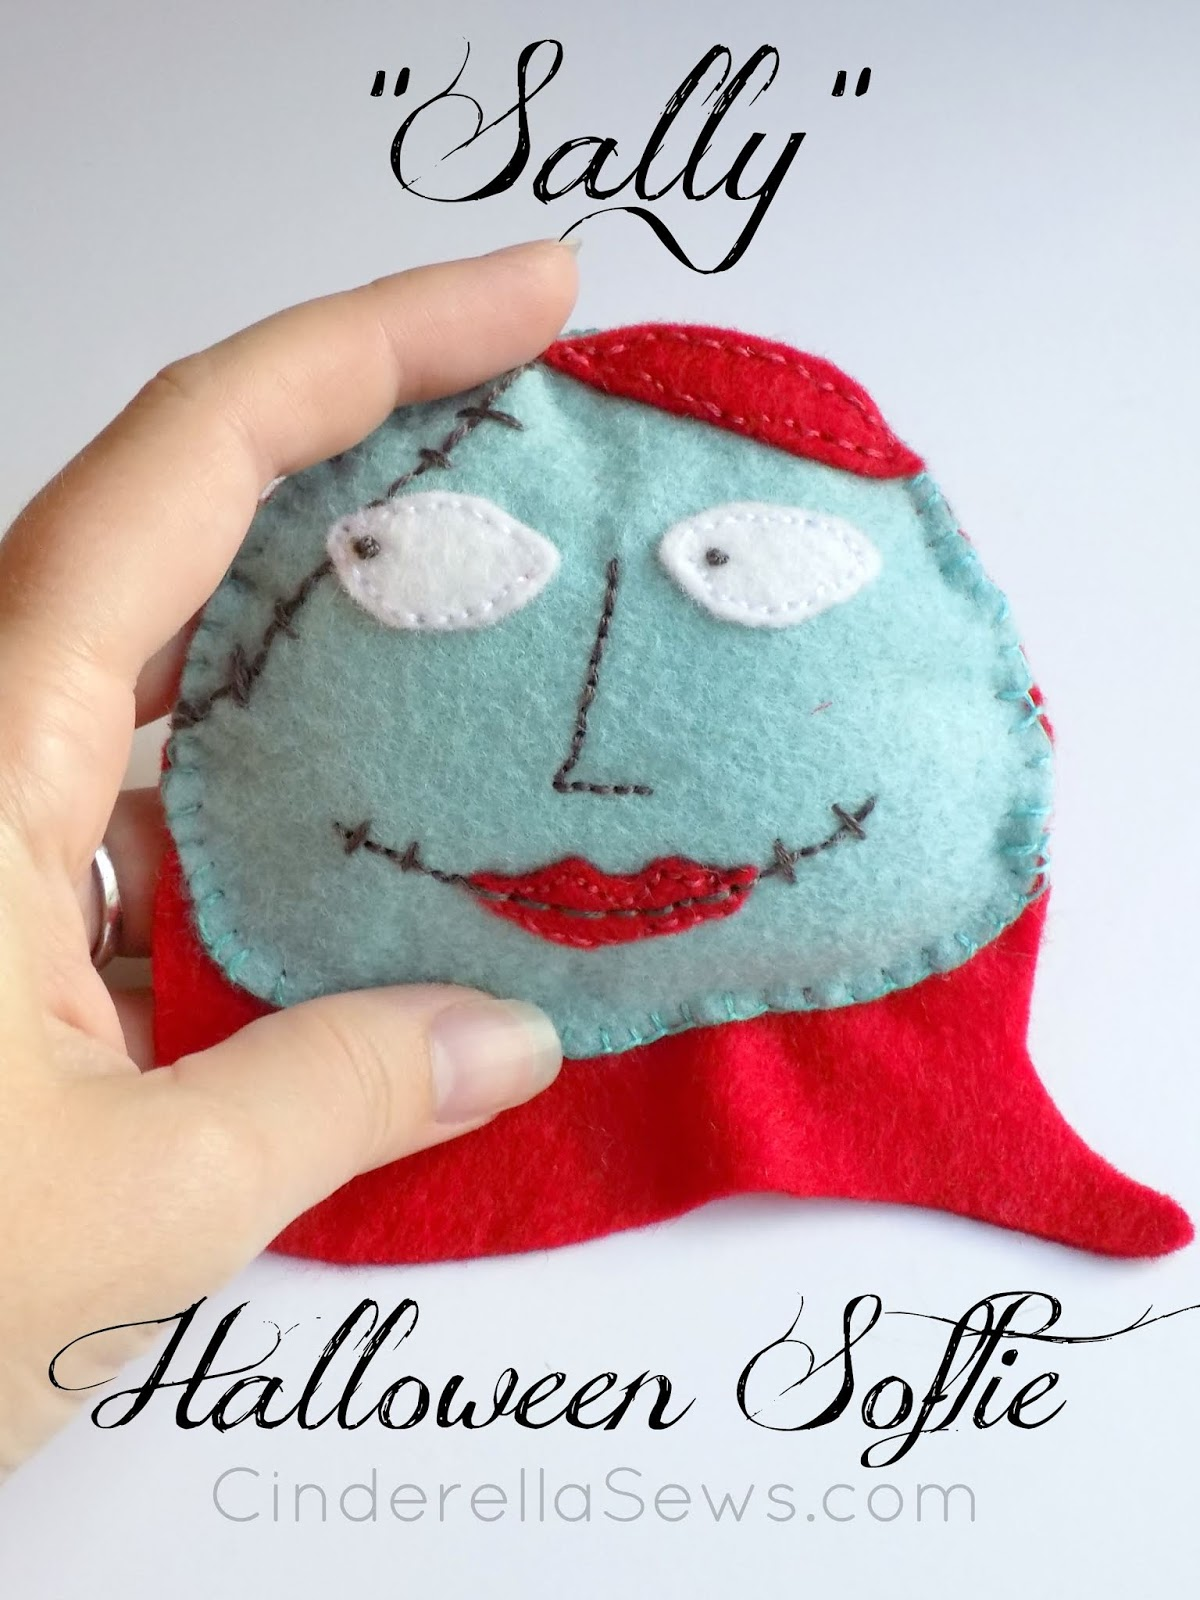 Sally Halloween Sewing Project Free Pattern